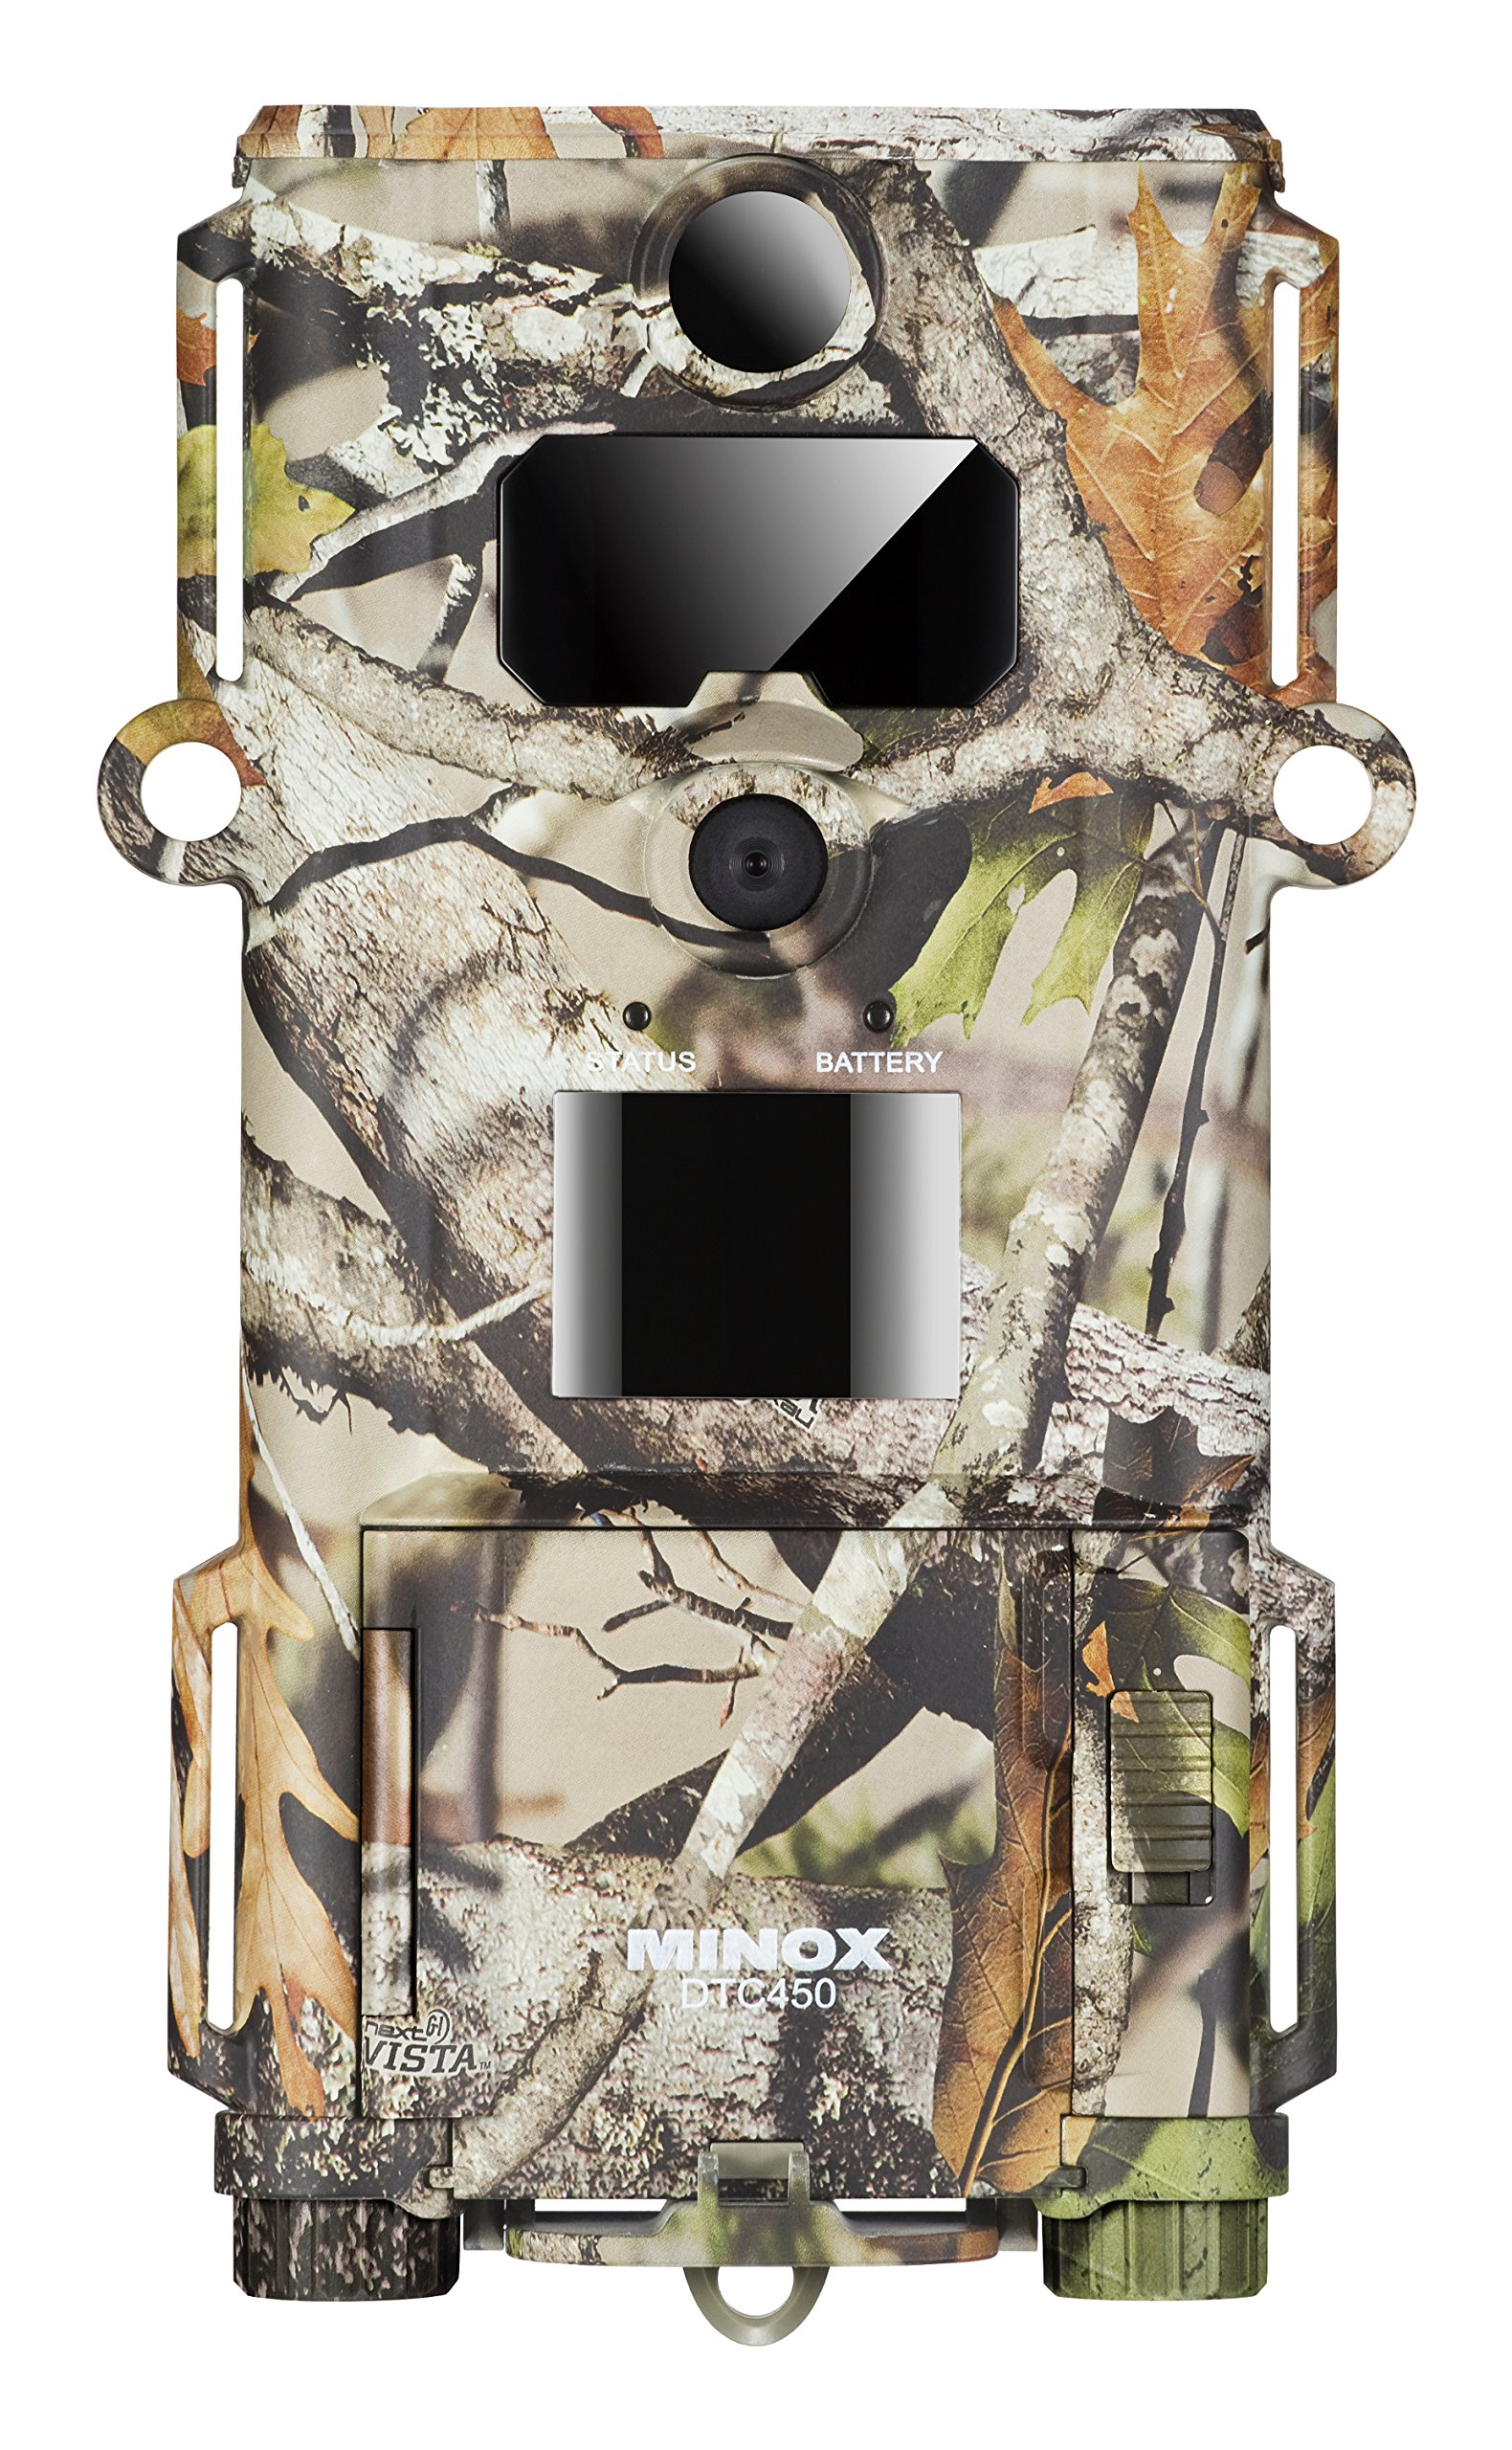 MINOX DTC 450 Trail Cam - The Slimmest Most Unobtrusive Weatherproof Wildlife and Outdoor Surveillance Camera with Polycarbonate Housing by MINOX (Image #1)